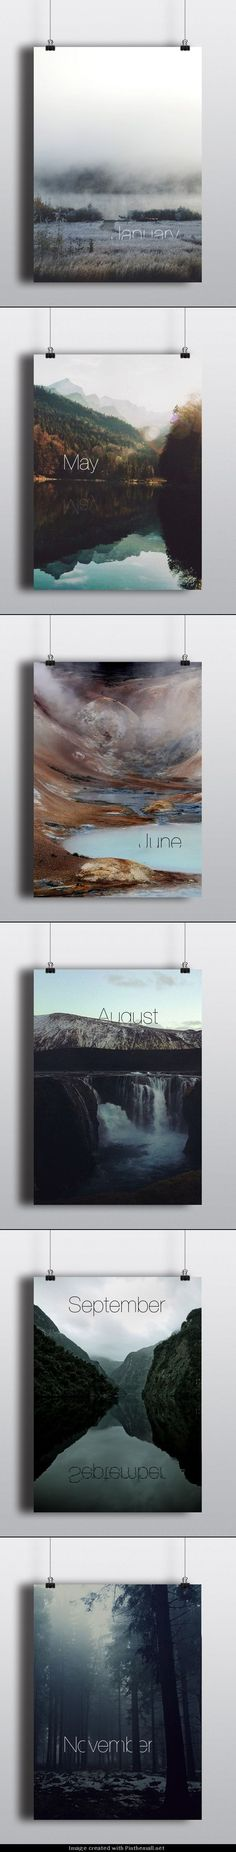 Interesting design to display the months of the year. Different regions could use different landscapes